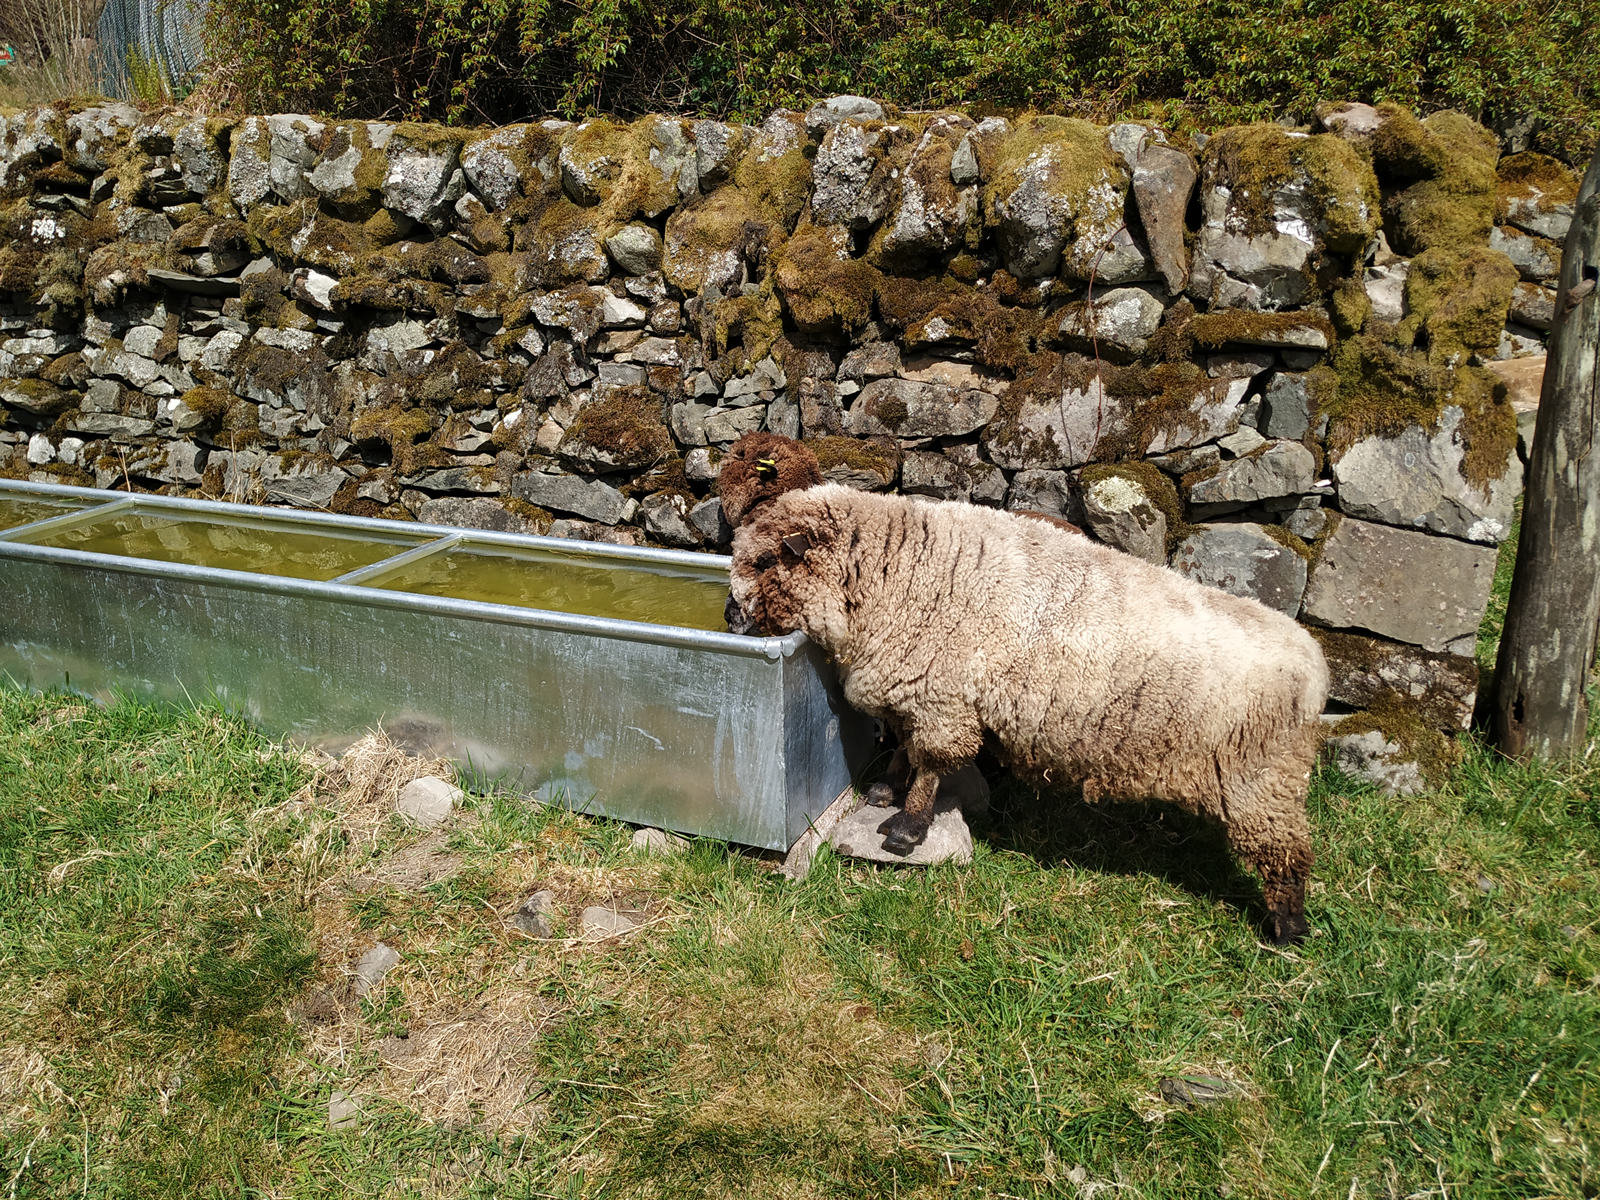 sheep having a drink